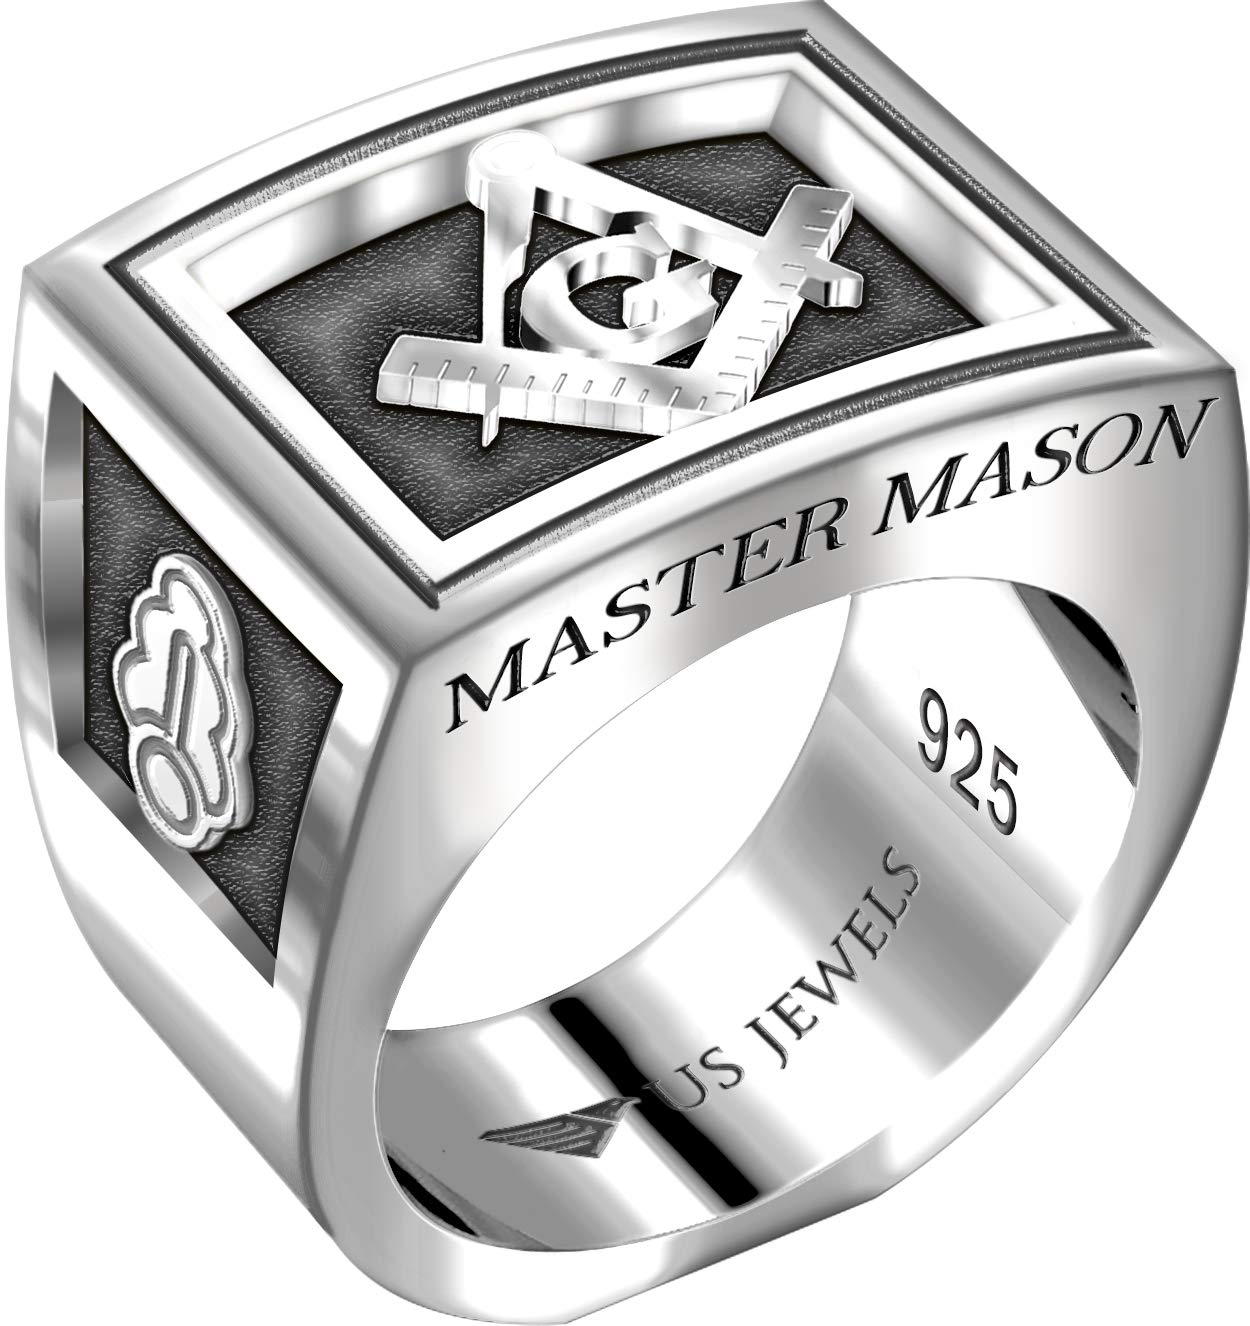 US Jewels And Gems Men's Heavy 0.925 Sterling Silver Freemason Blue Lodge Ring Band, Size 9